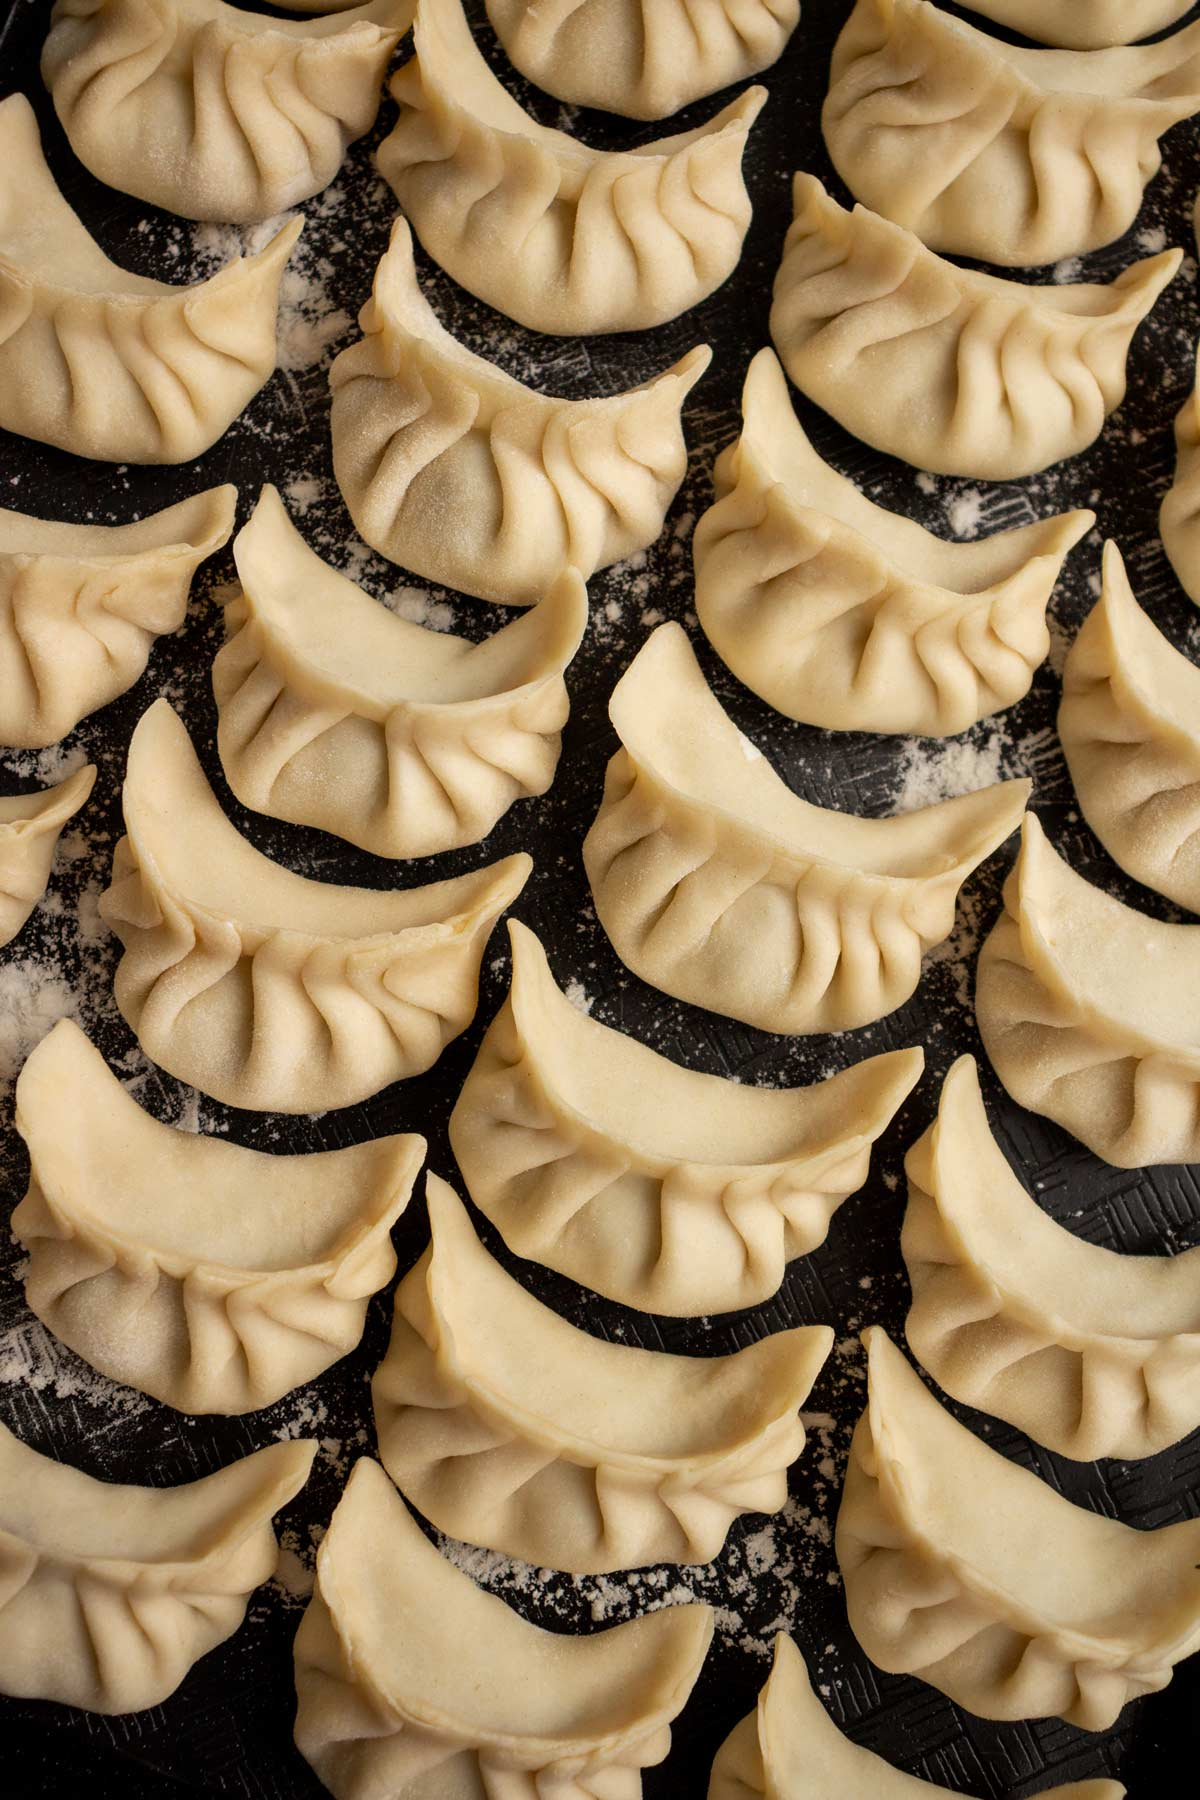 Rows of pleated dumplings on a black surface.